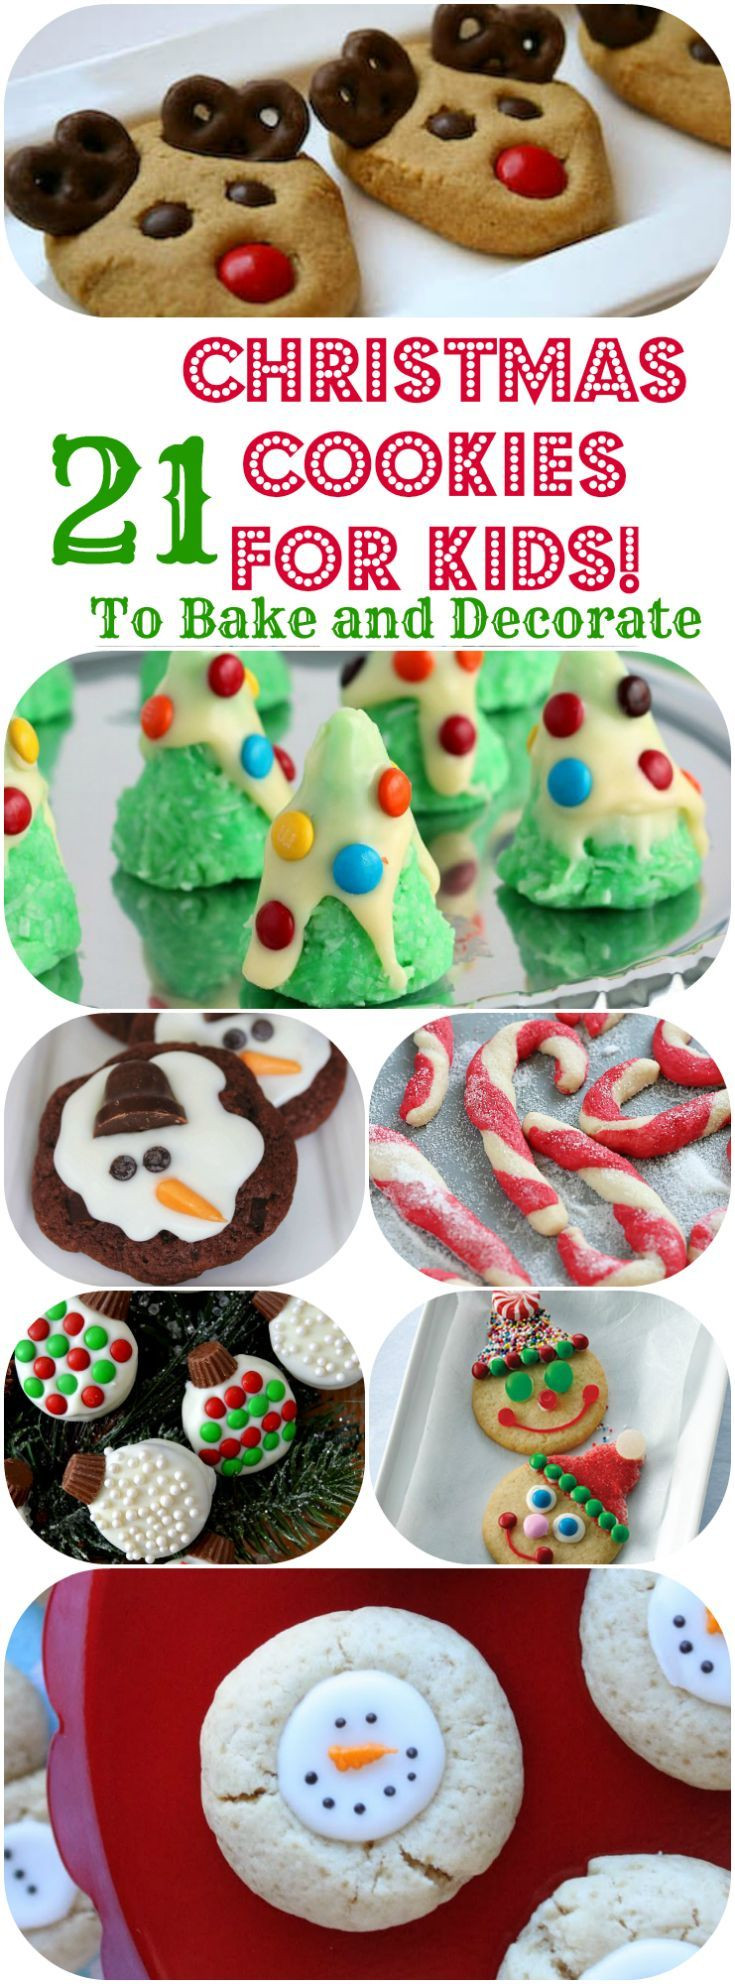 Easy Christmas Desserts For Kids  1000 ideas about Kid Desserts on Pinterest